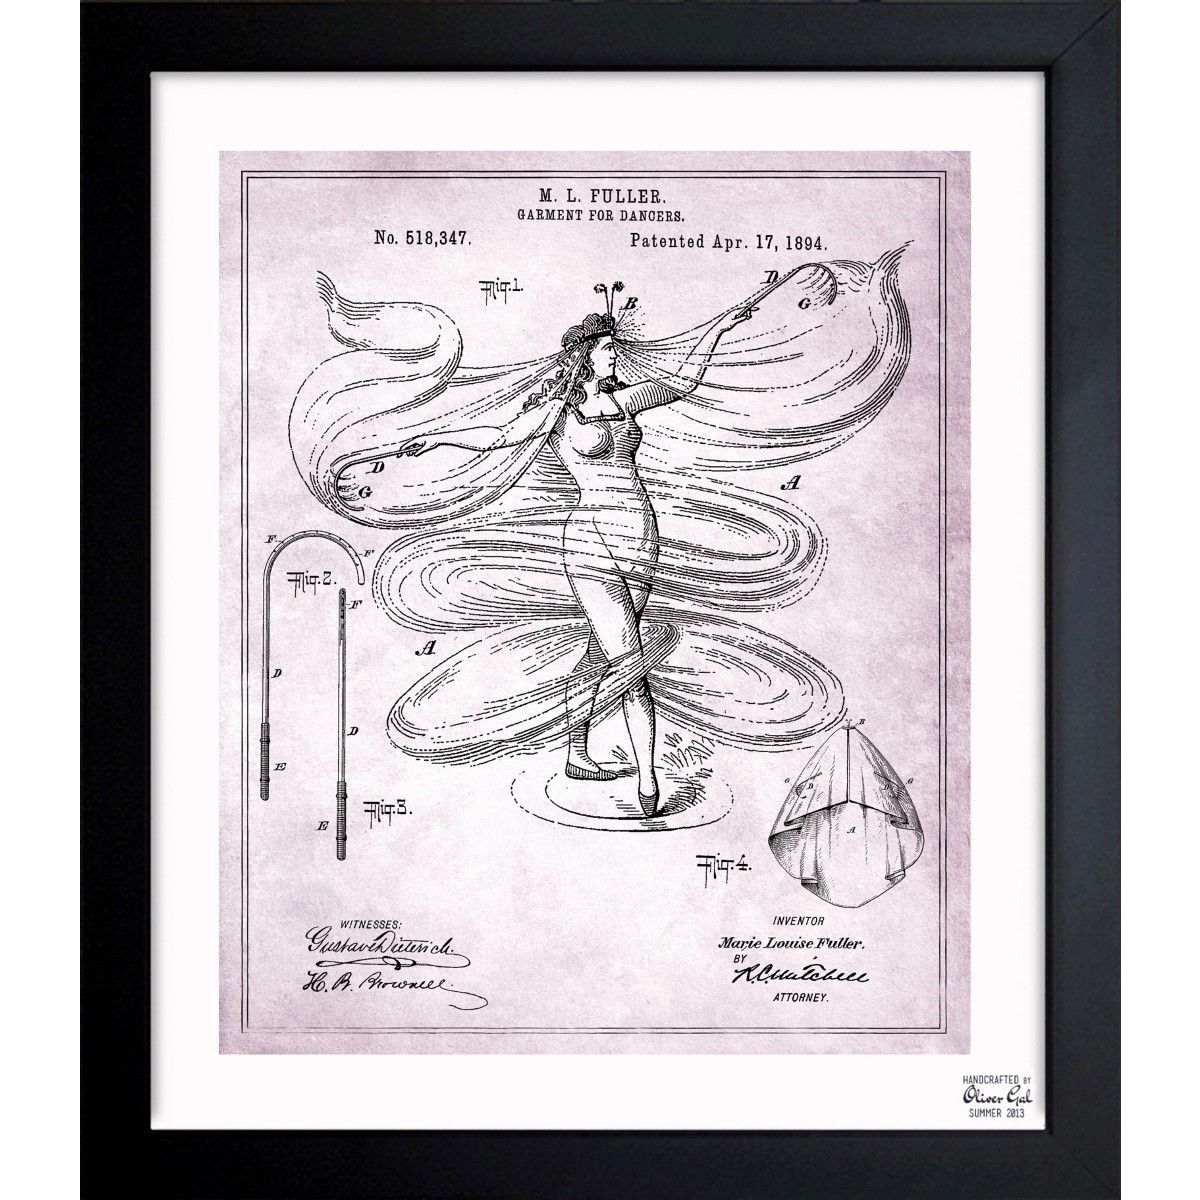 Oliver gal garment for dancer 1894 framed blueprint art products oliver gal garment for dancer 1894 framed blueprint art malvernweather Gallery